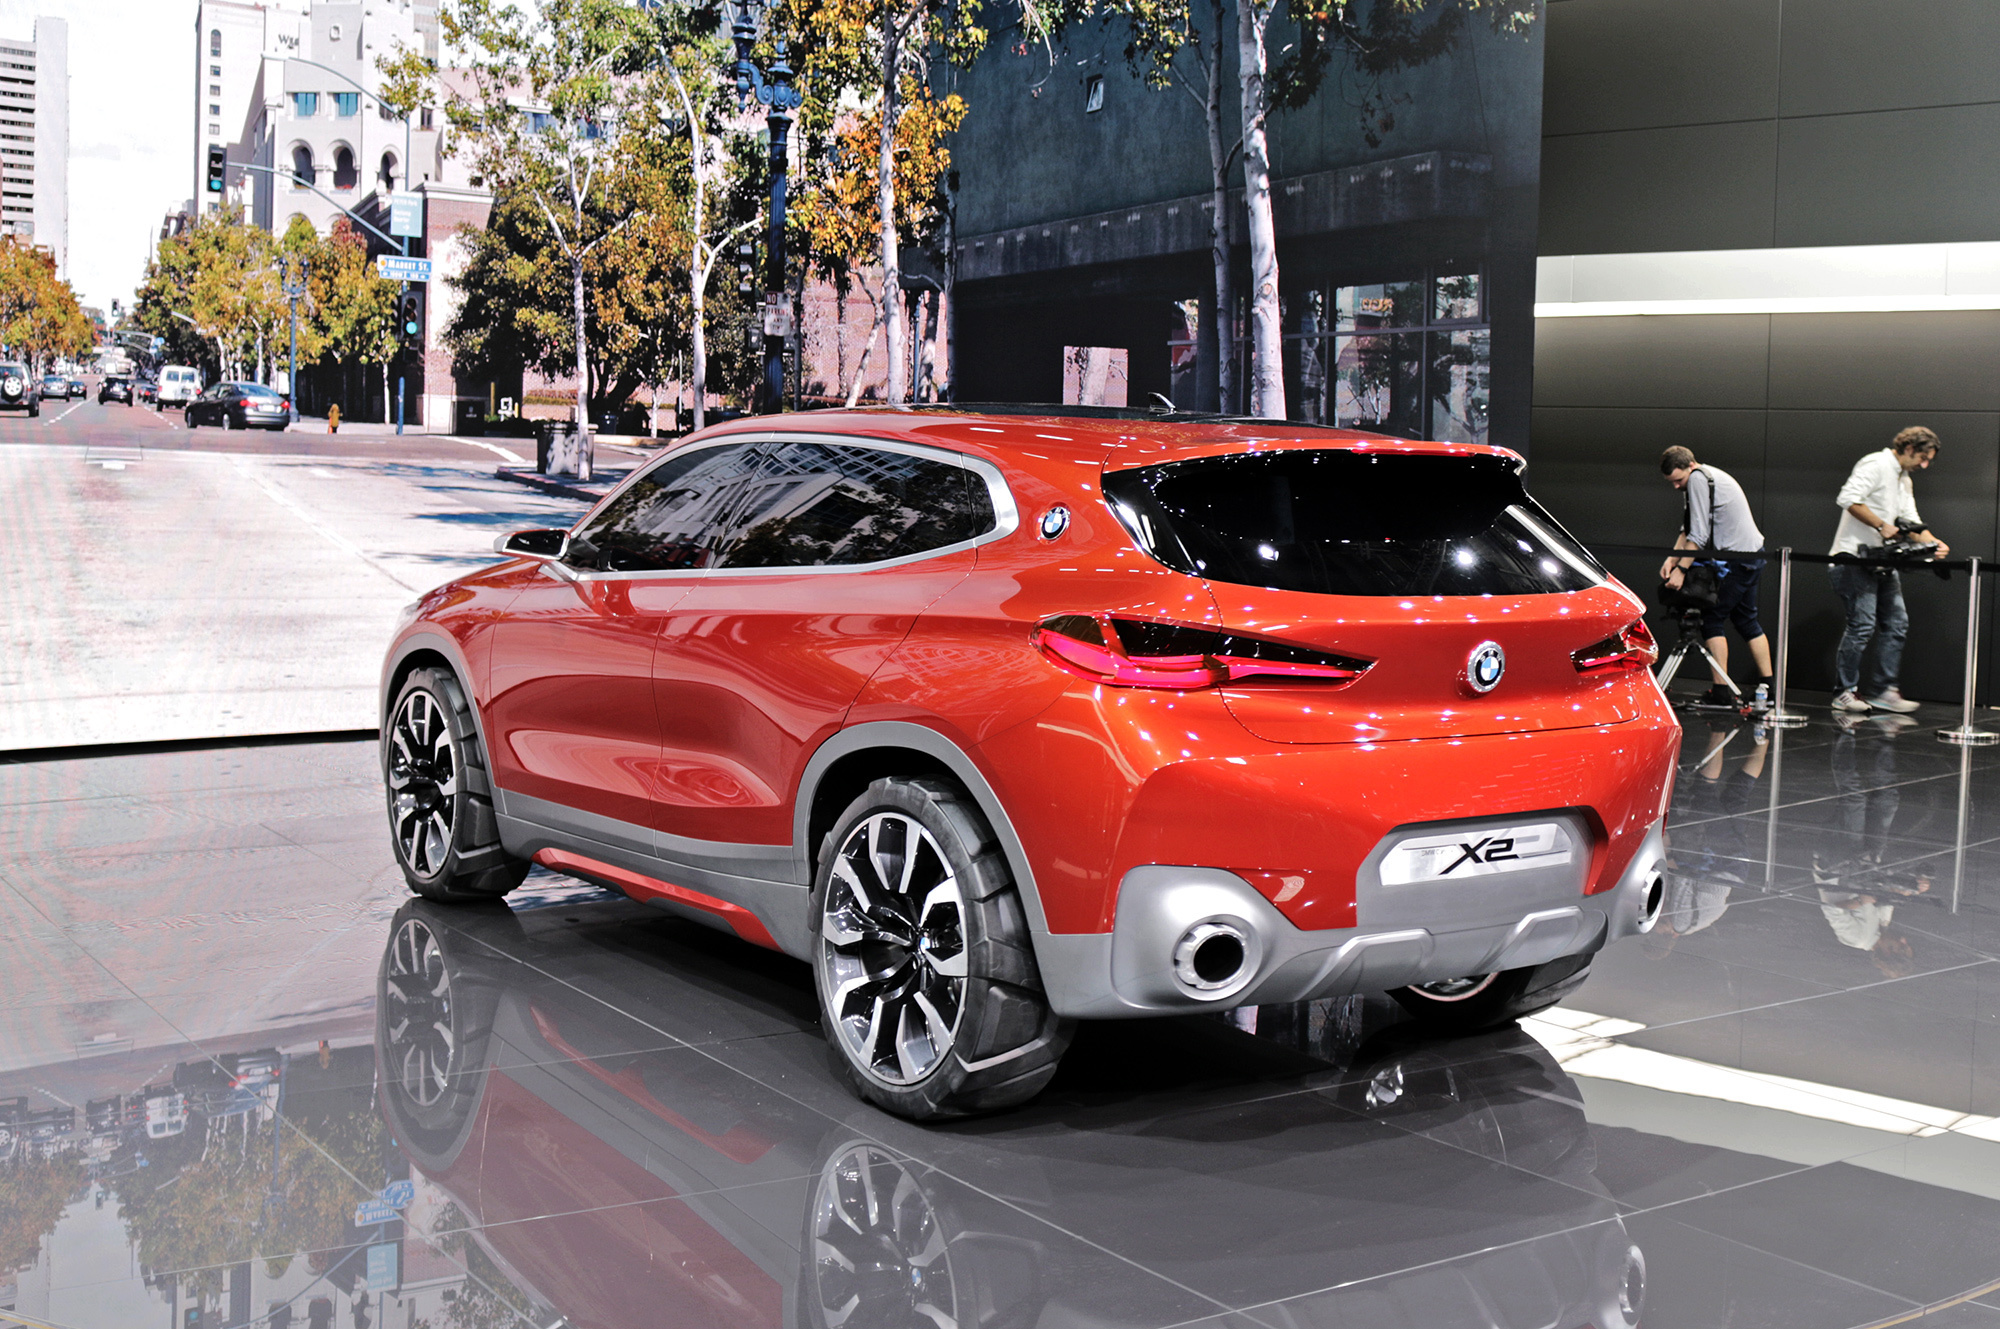 BMW X2 Wallpapers Images Photos Pictures Backgrounds